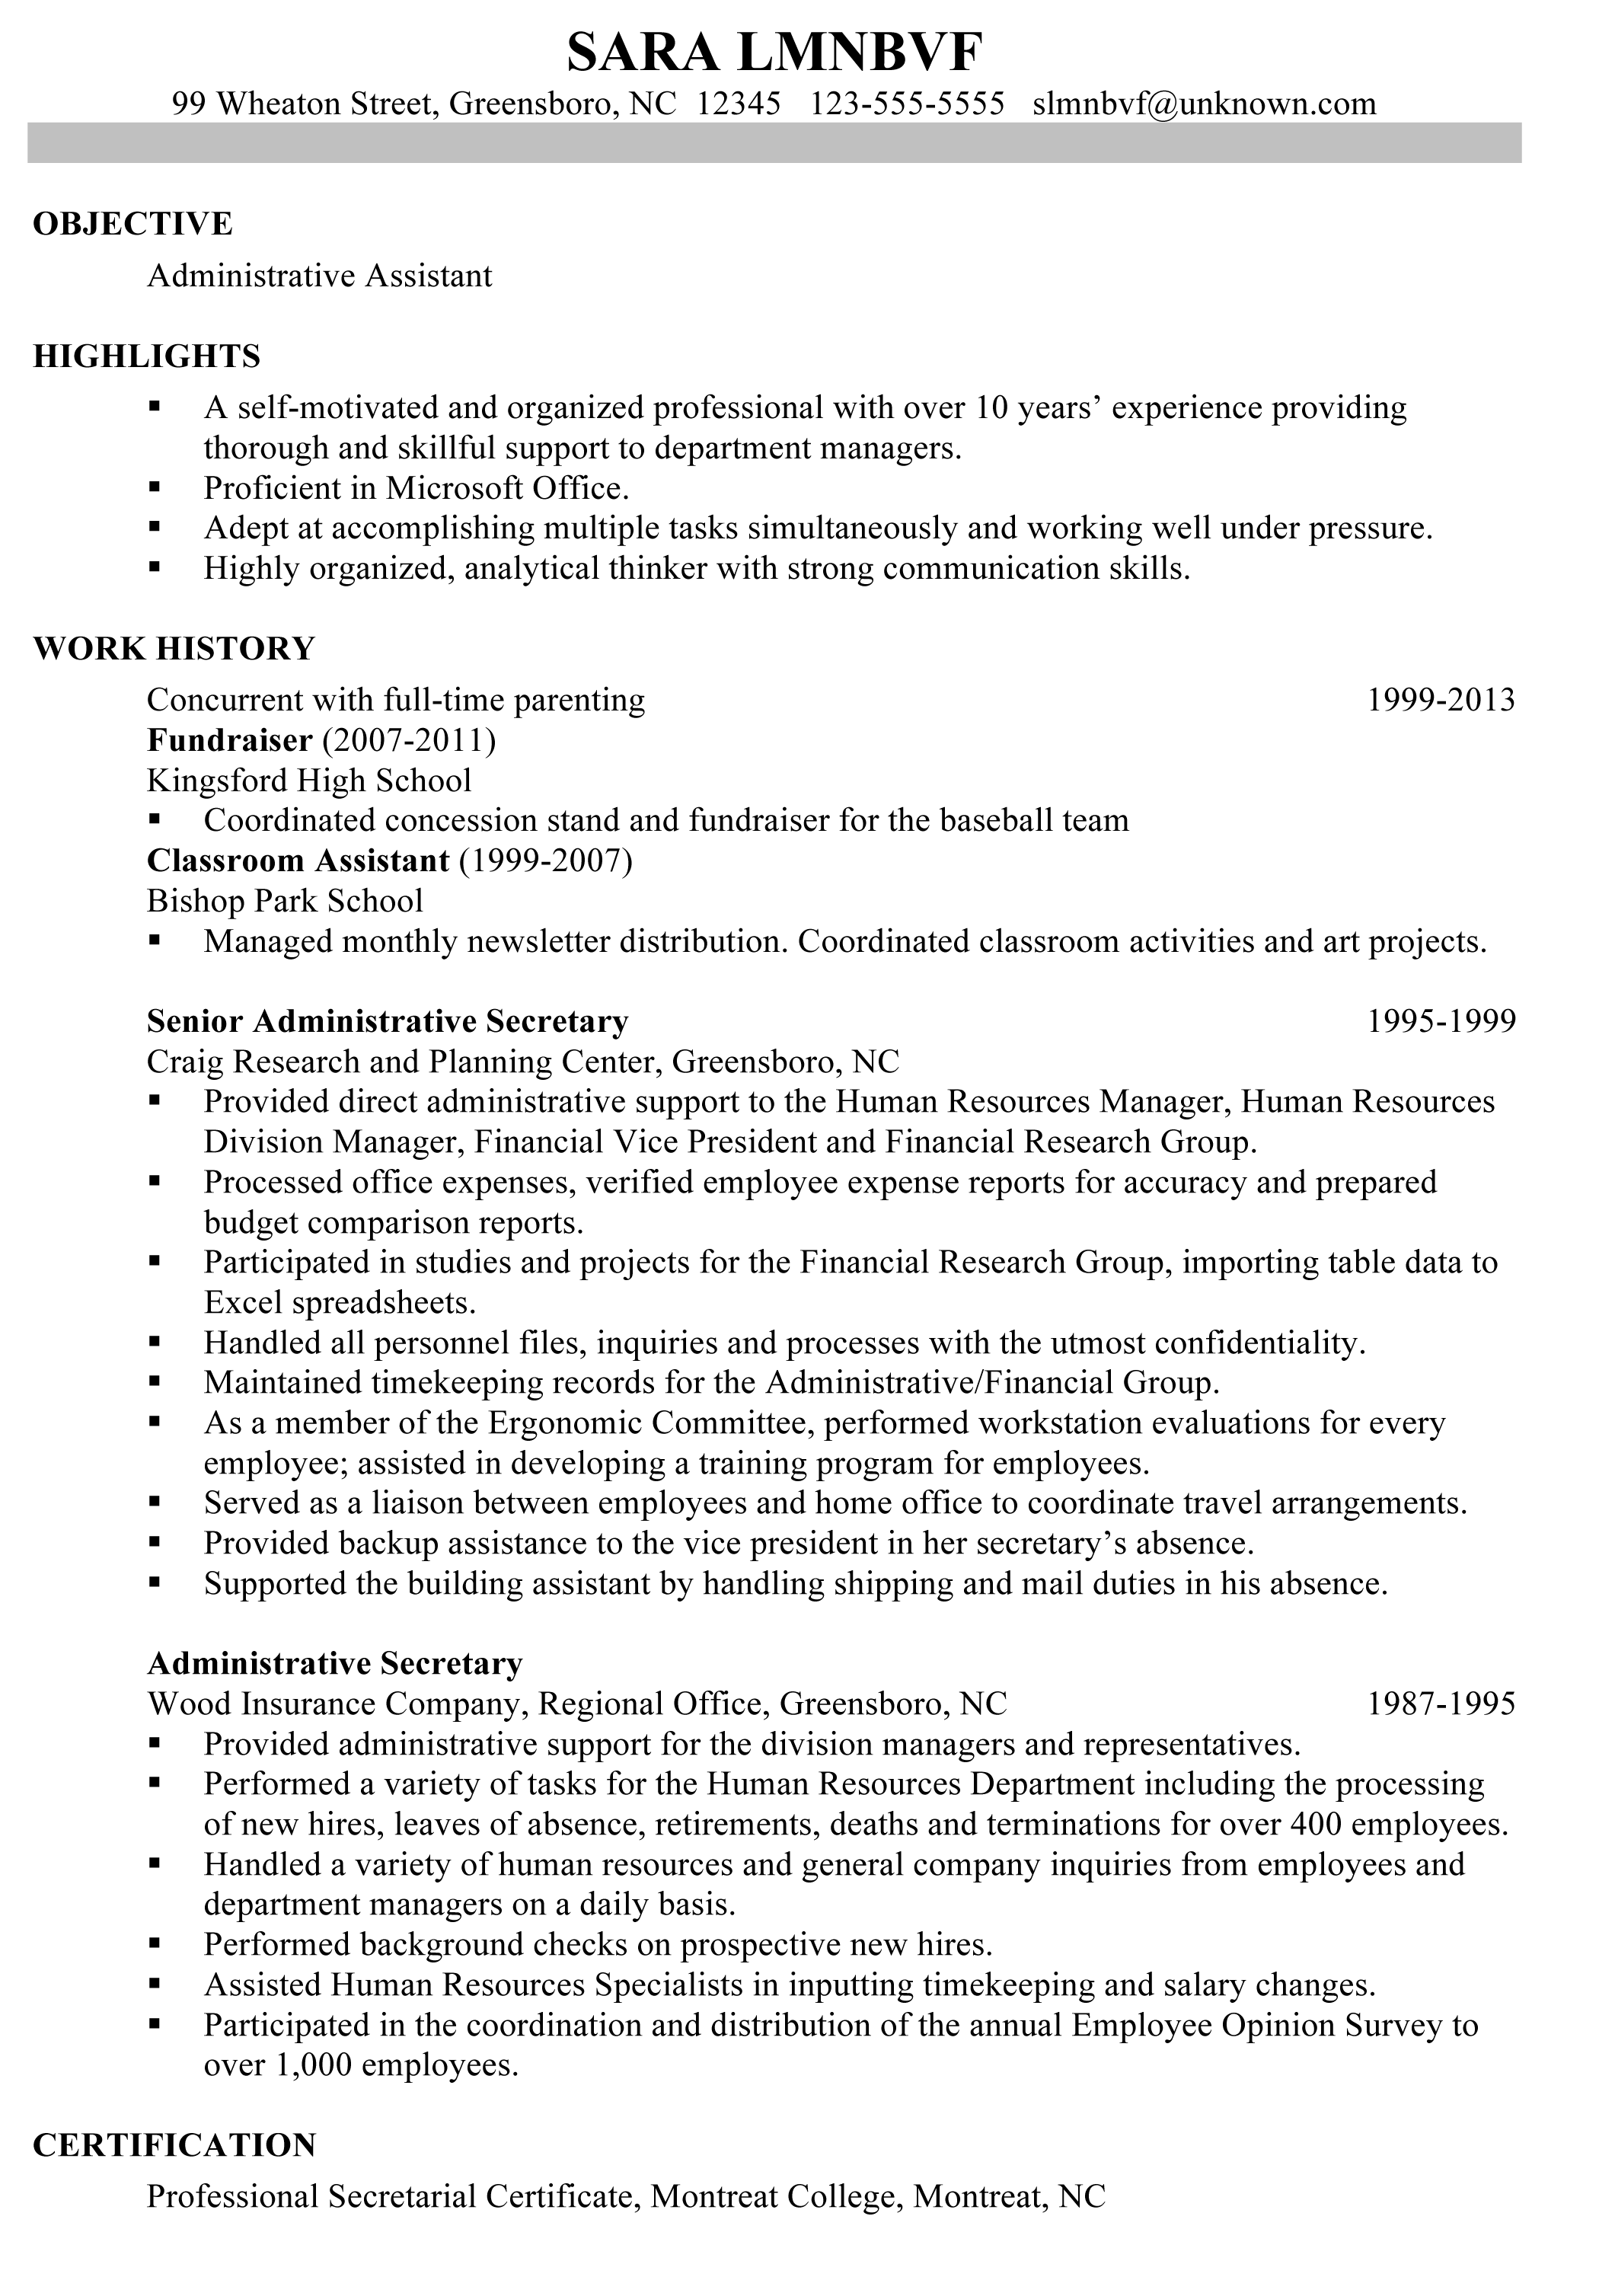 Administrative Assistant Job Description Resume Chronological Resume Sample Administrative Assistant  Resume